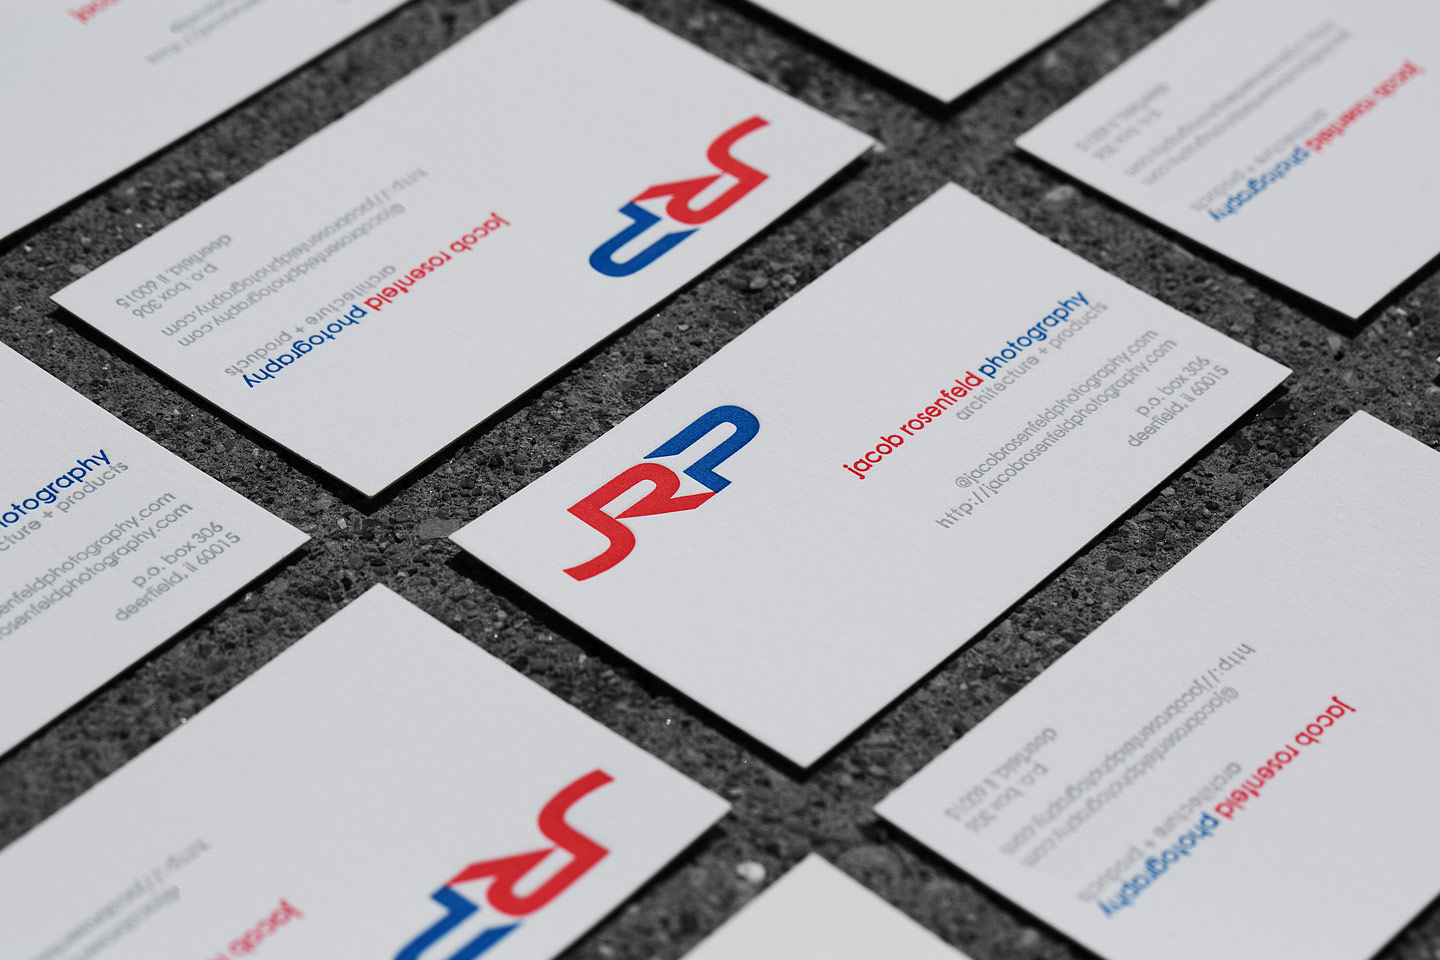 A large grouping of JRP letterpress business cards arranged in a grid